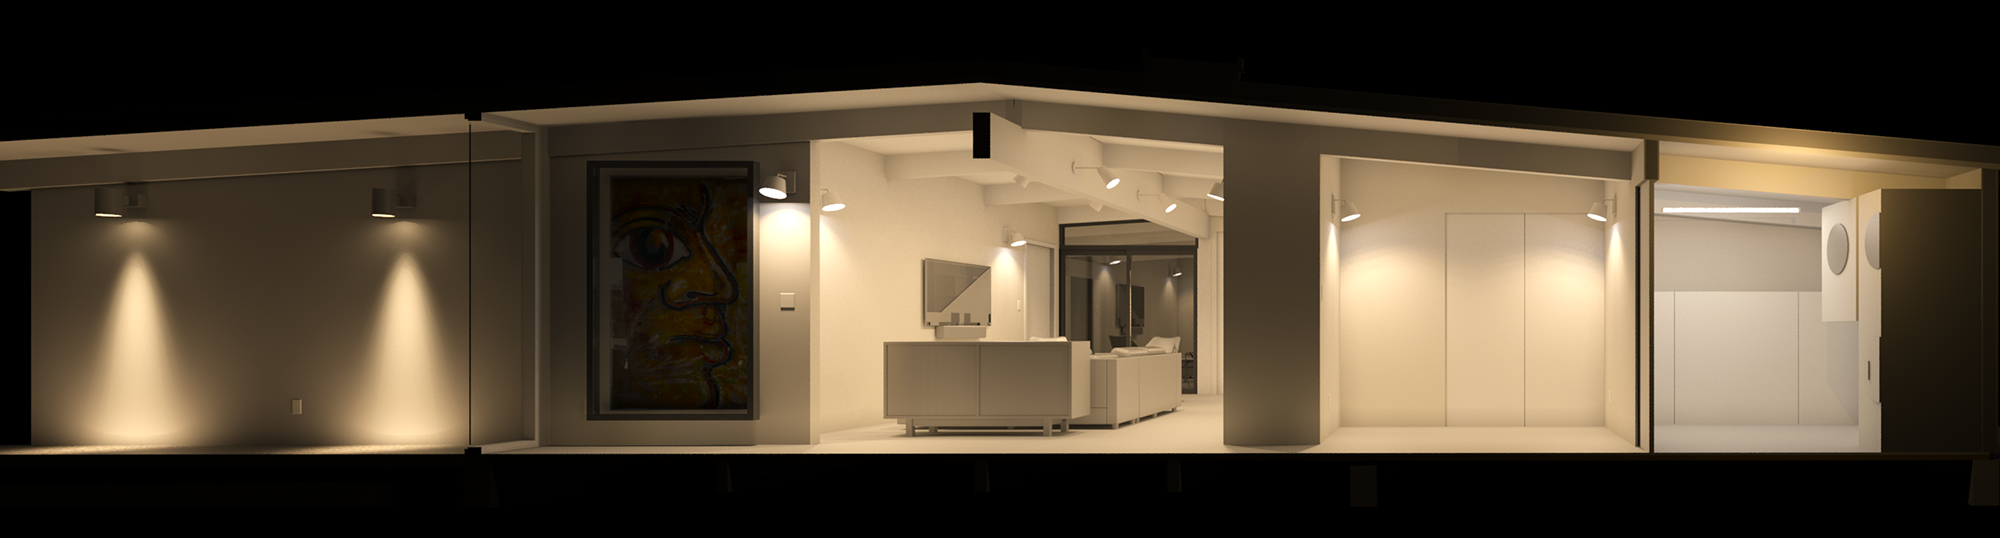 Early lighting study with wall mounted fixtures. Note that the painting will have it's own dedicated light!